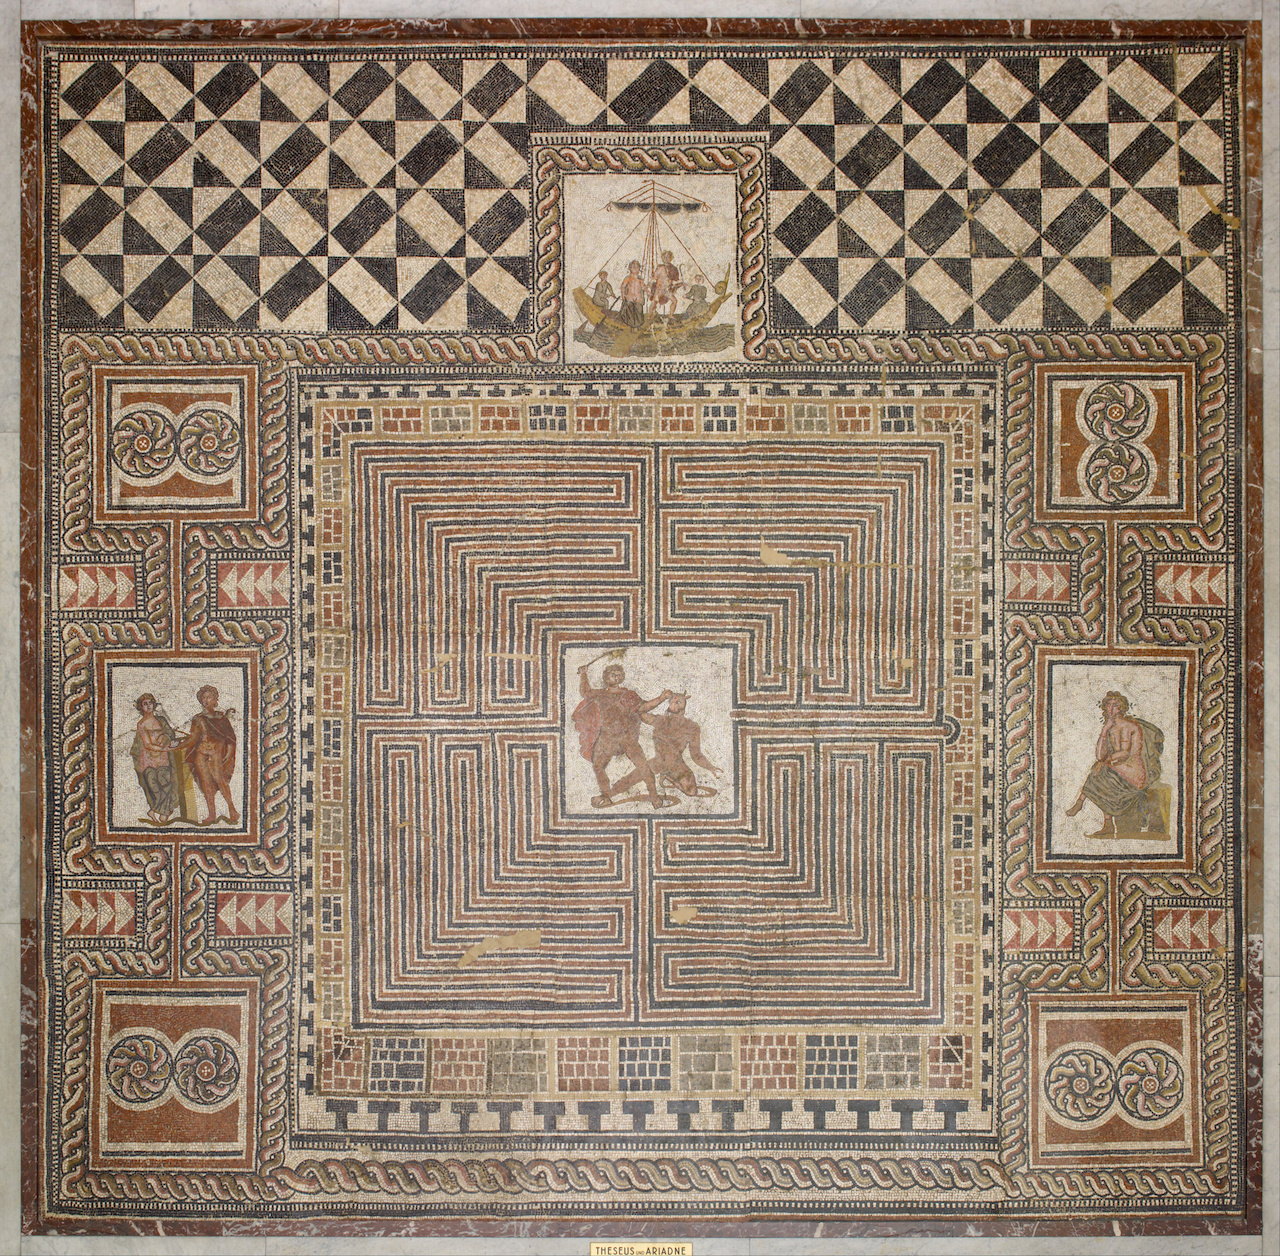 """Artist Unknown, """"Theseus Mosaic"""" (300AD-400AD) Kunsthistorisches Museum, Vienna (public domain, image courtesy of Wikimedia Commons)"""